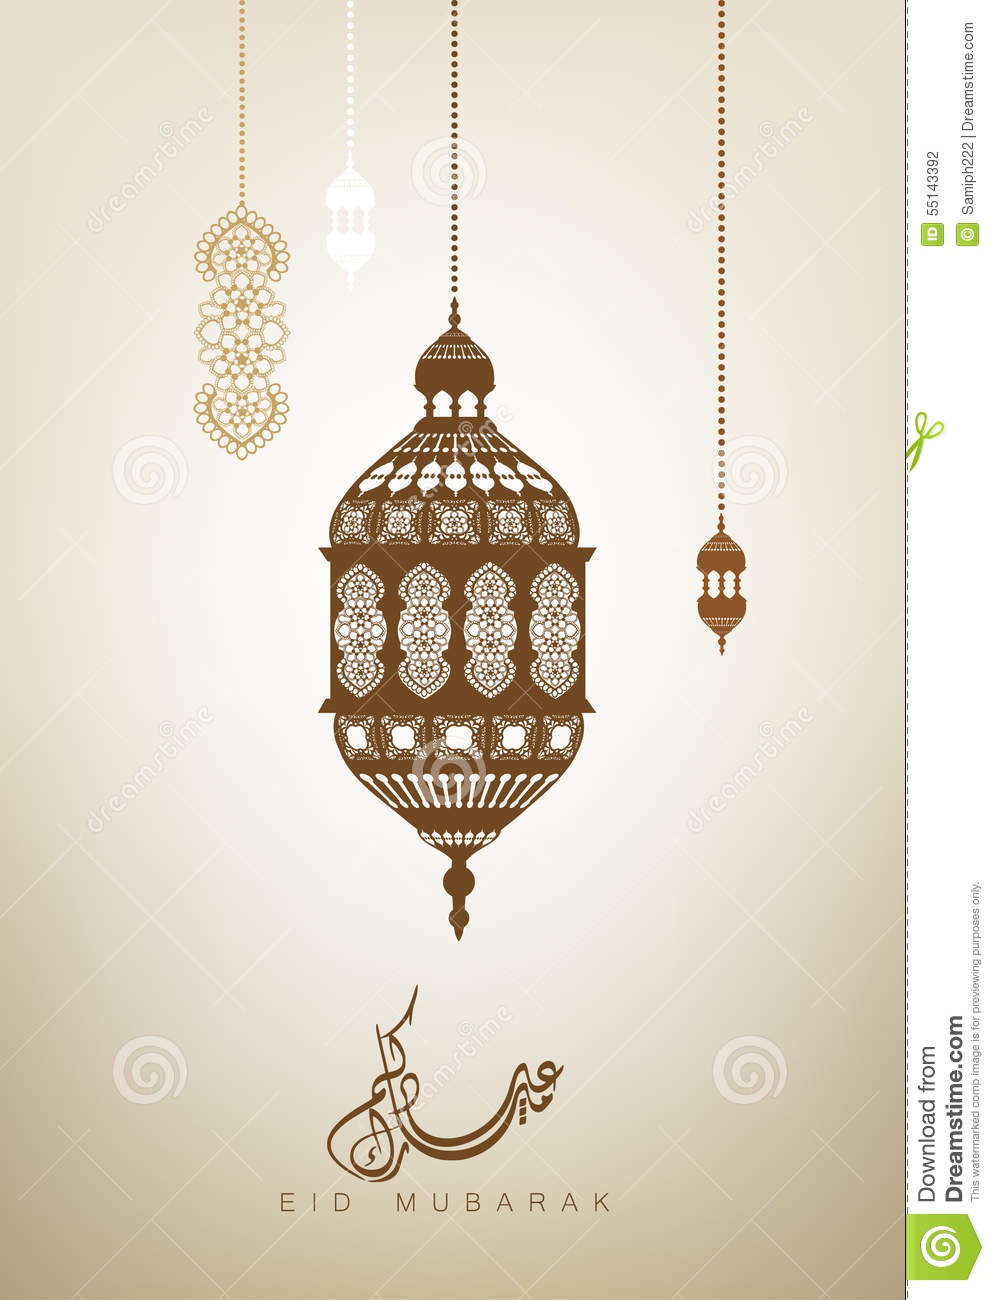 Eid Mubarak Greeting Social Banner Royalty Free Stock Photography